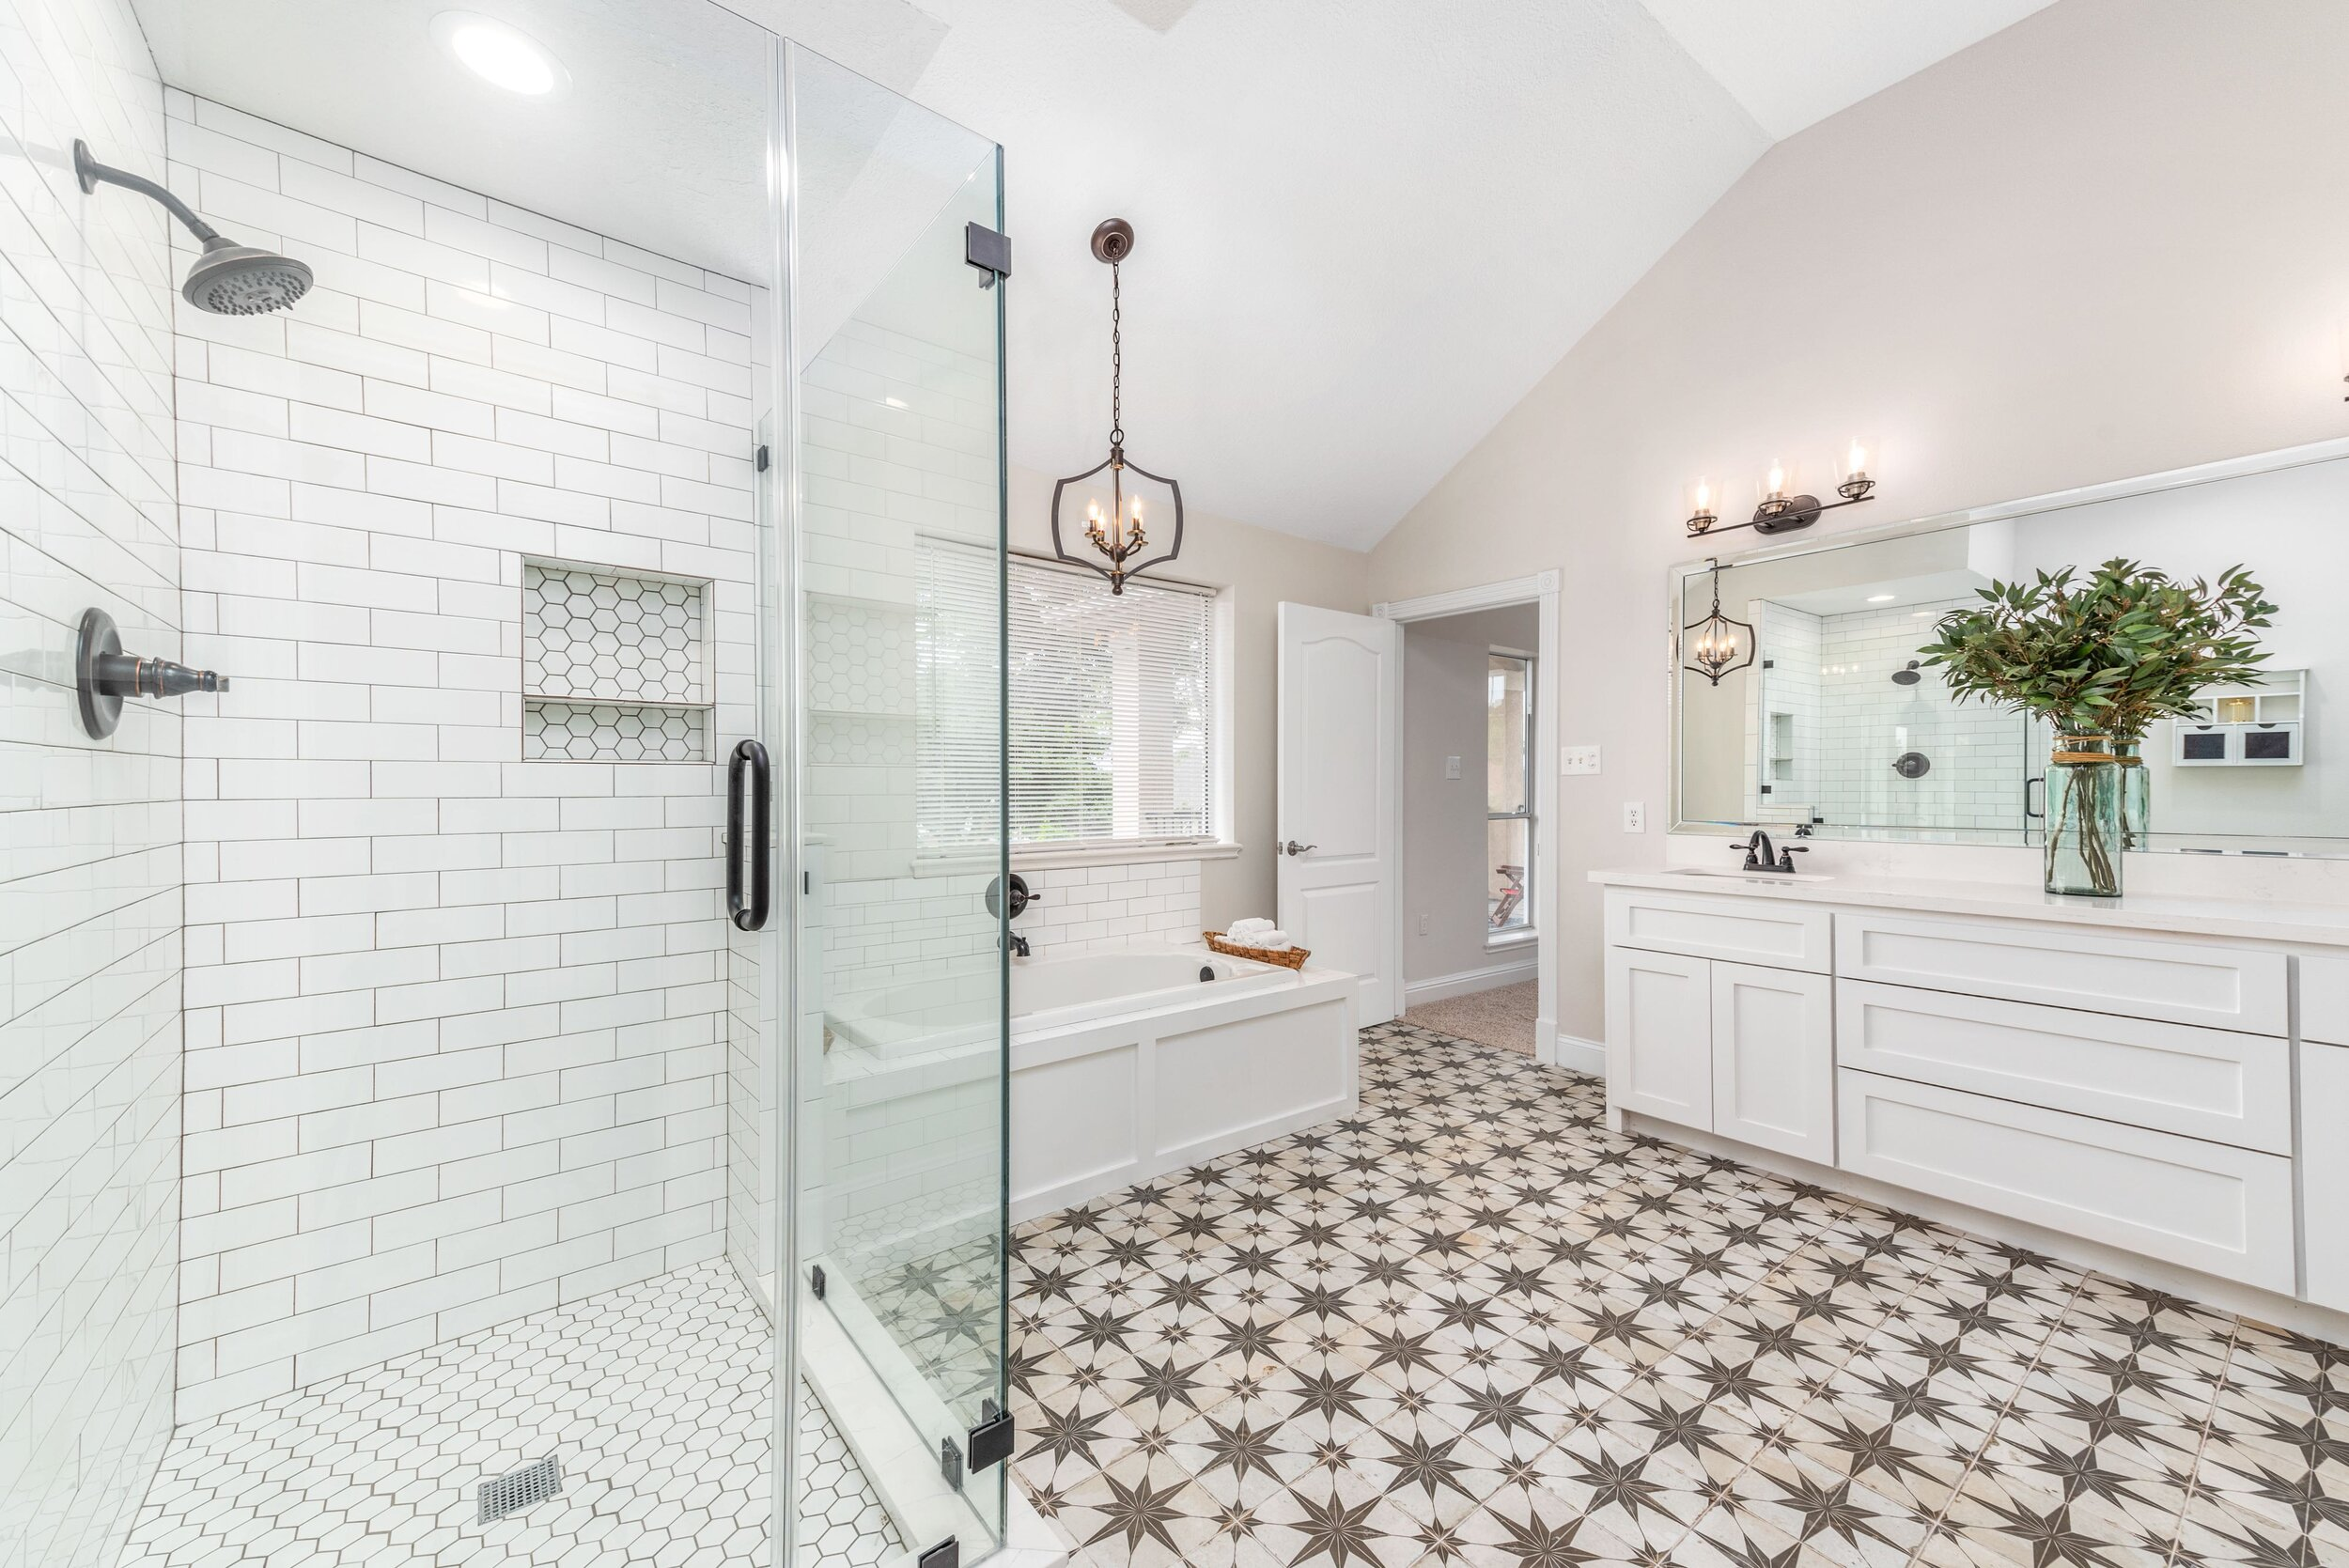 This stunning master bathroom was an amazing project. This room was completely transformed from two rooms into one to include a frameless walk in shower, custom shaker style cabinets, encaustic tile floor, spanish tile floor, subway tile with dark grout. The shower floor features a hexagon subway tile, with tile rubbed bronze finish. Brand new paint, fixtures, and bathtub.